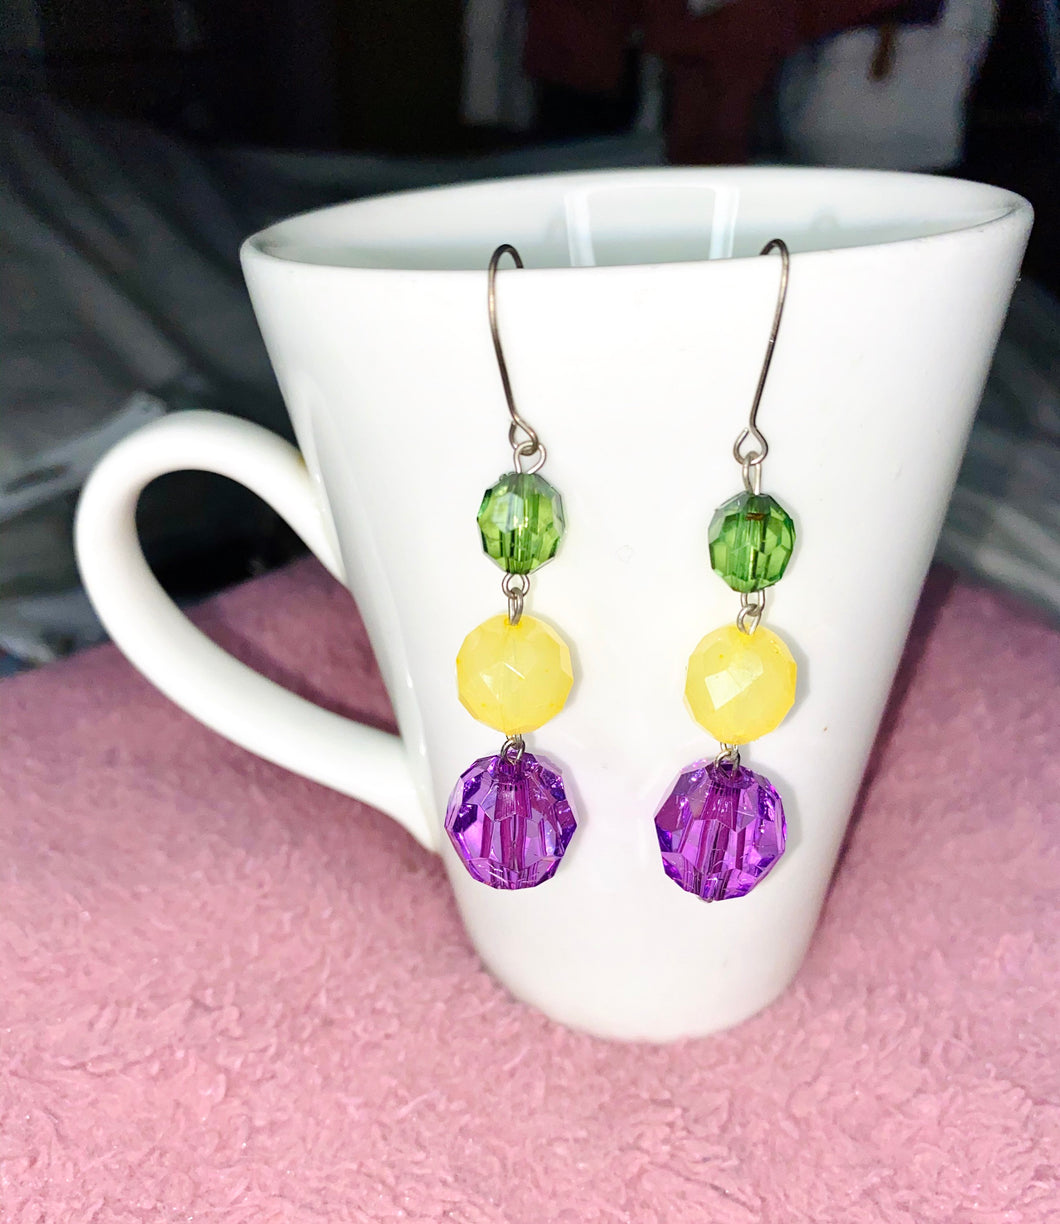 Recycled handmade Earrings- Dangle Earrings - Beads Earrings - Colourful - Green/Yellow/Purple Earrings- Classy Earrings